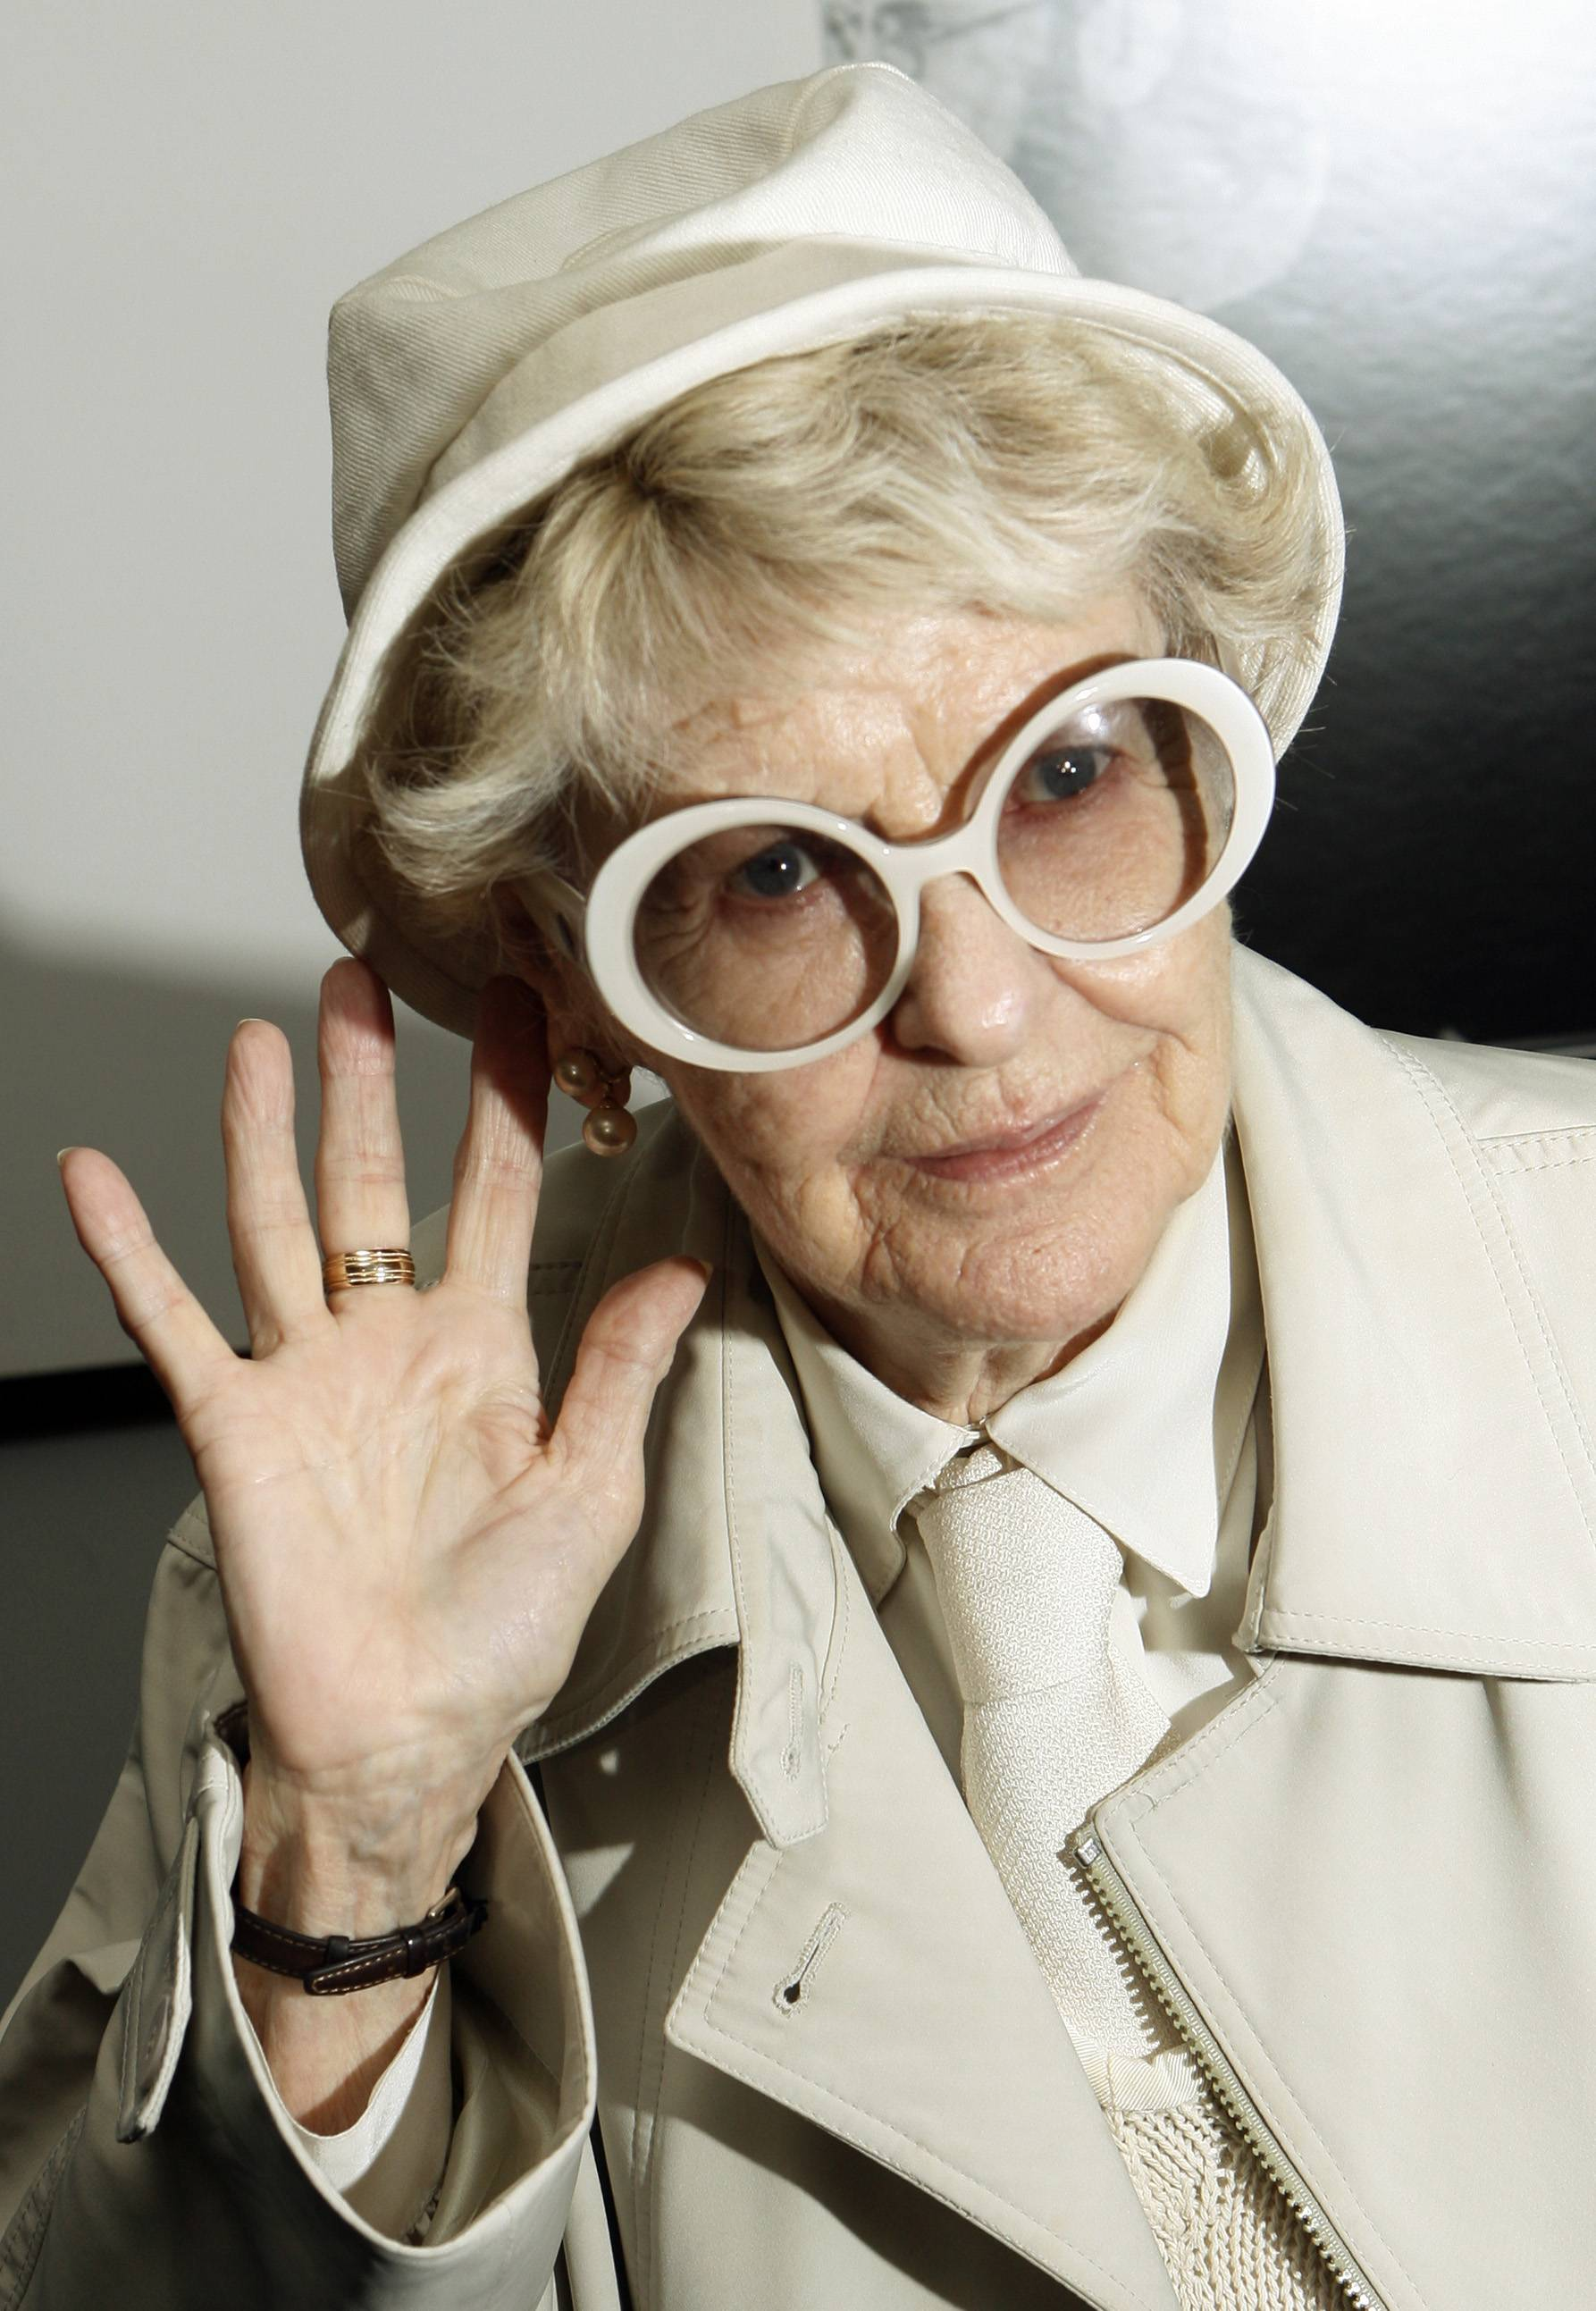 Actress Elaine Stritch died Thursday, July 17, 2014 at her home in Birmingham, Mich. She was 89.